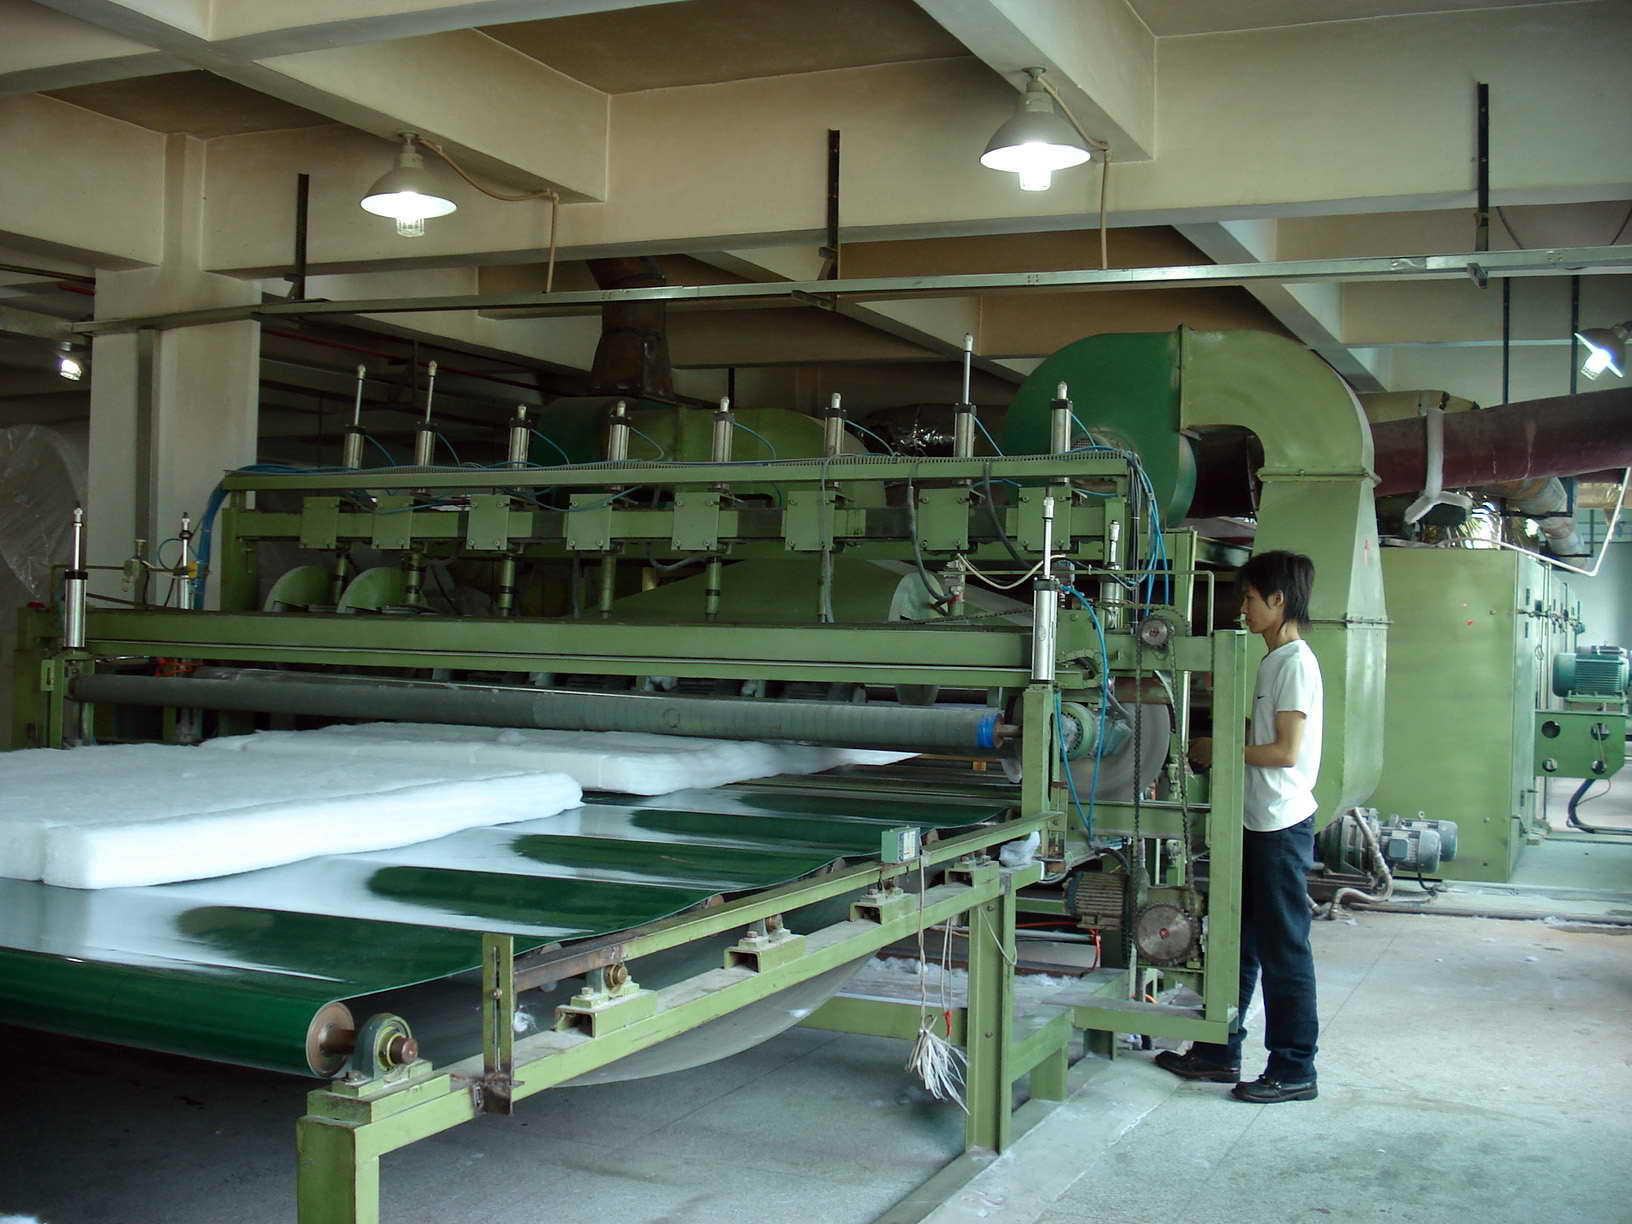 Vật liệu lót may mặc   Custom manufacturers of non-woven cotton non-woven cotton blankets textile fi